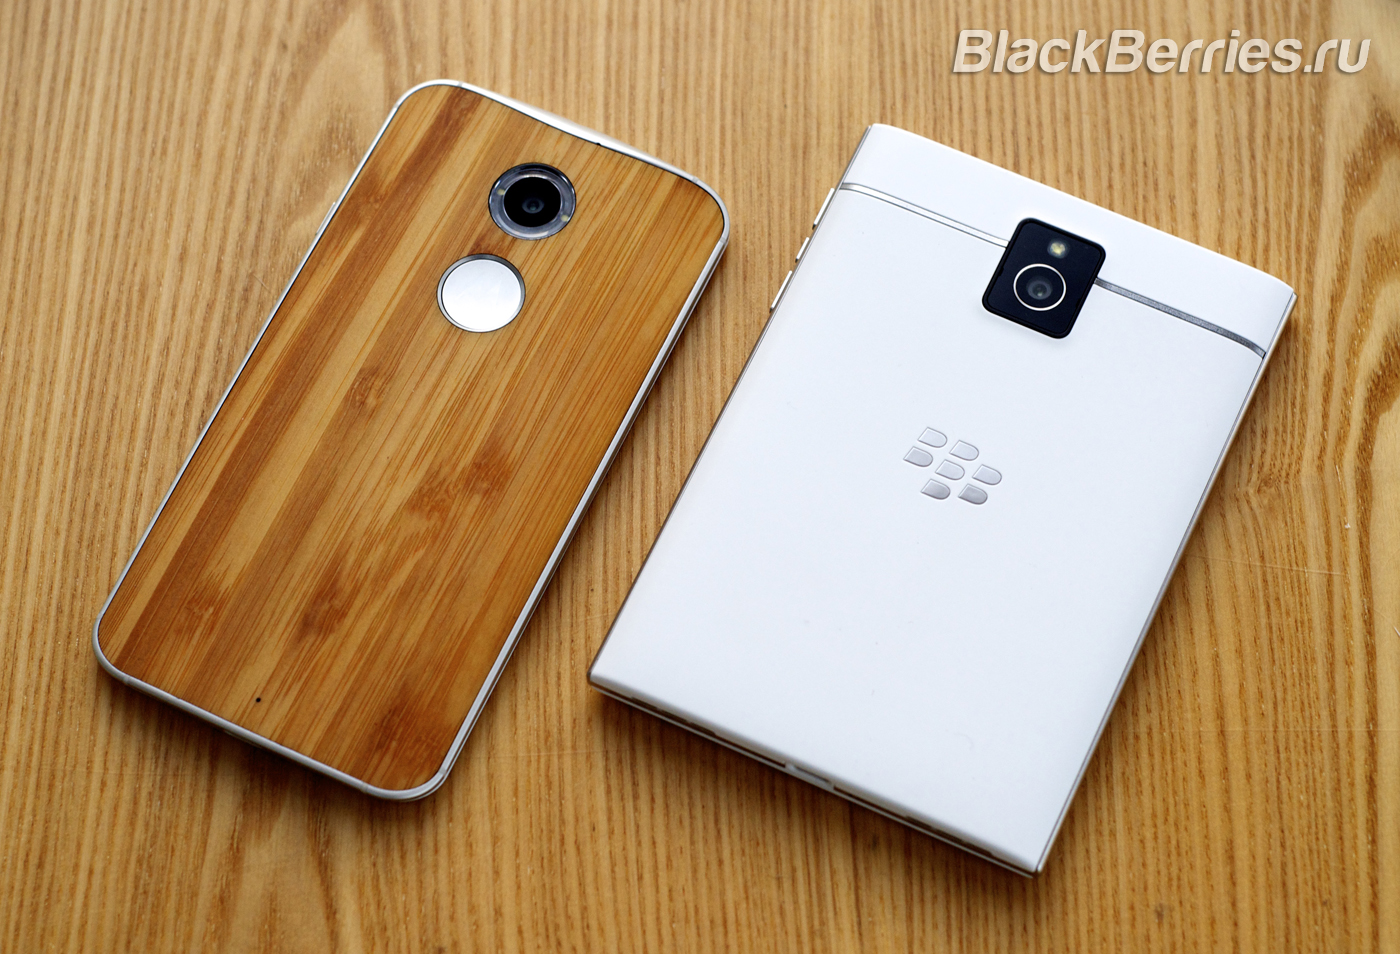 BlackBerry-Passport-Classic-Motorola-Moto-X-16